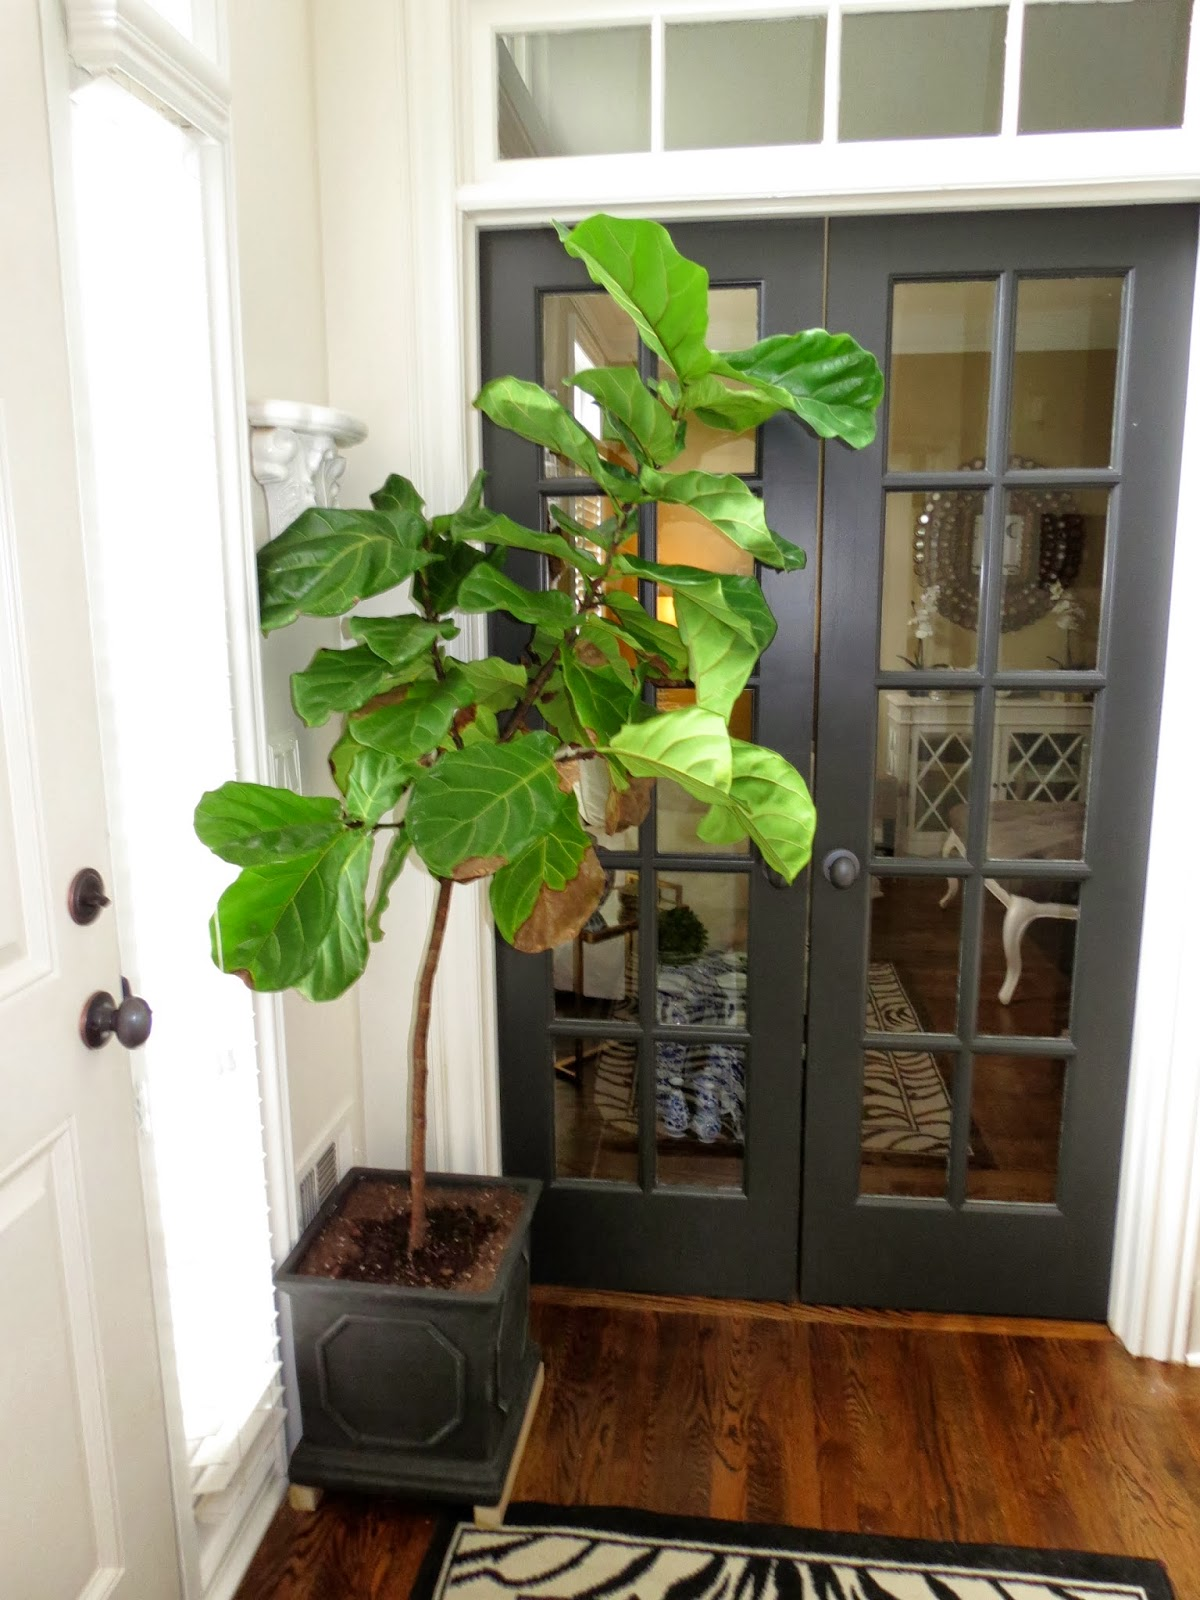 Tiffanyd caring for house plants a fiddle leaf fig story for Room decor ideas with plants